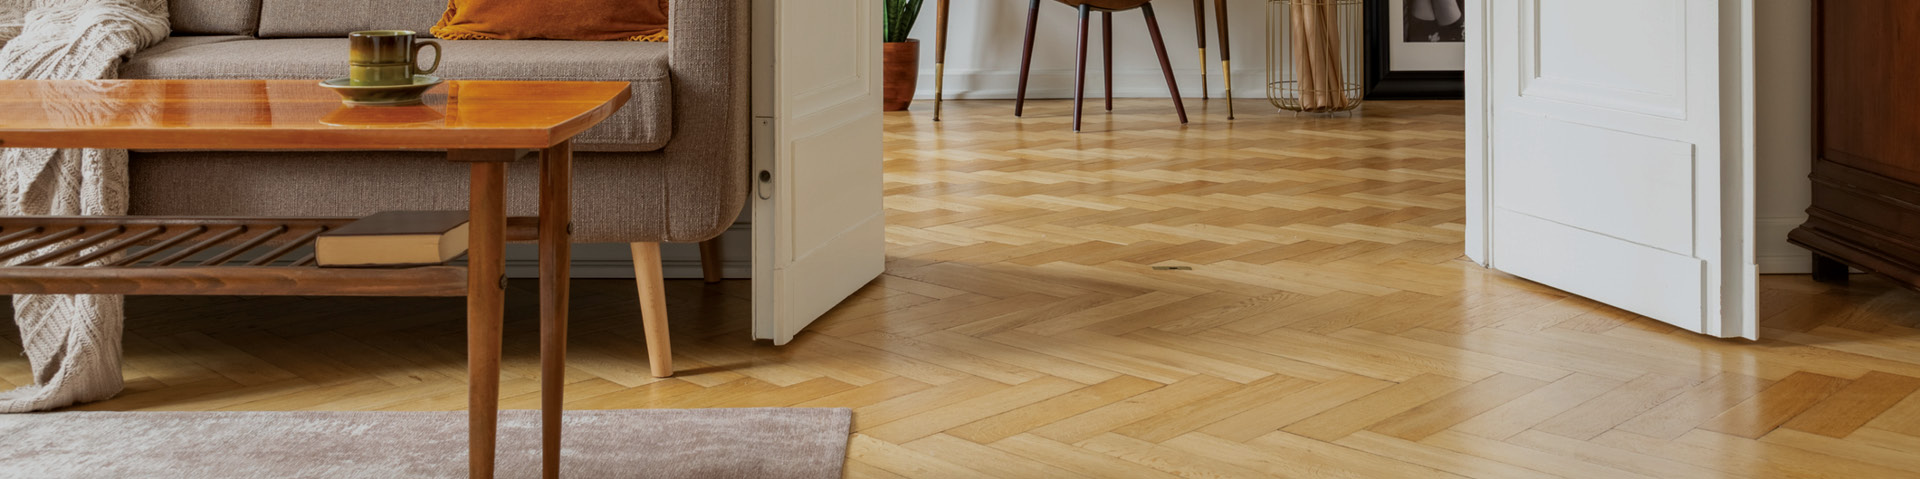 Parquetry wood floor installation